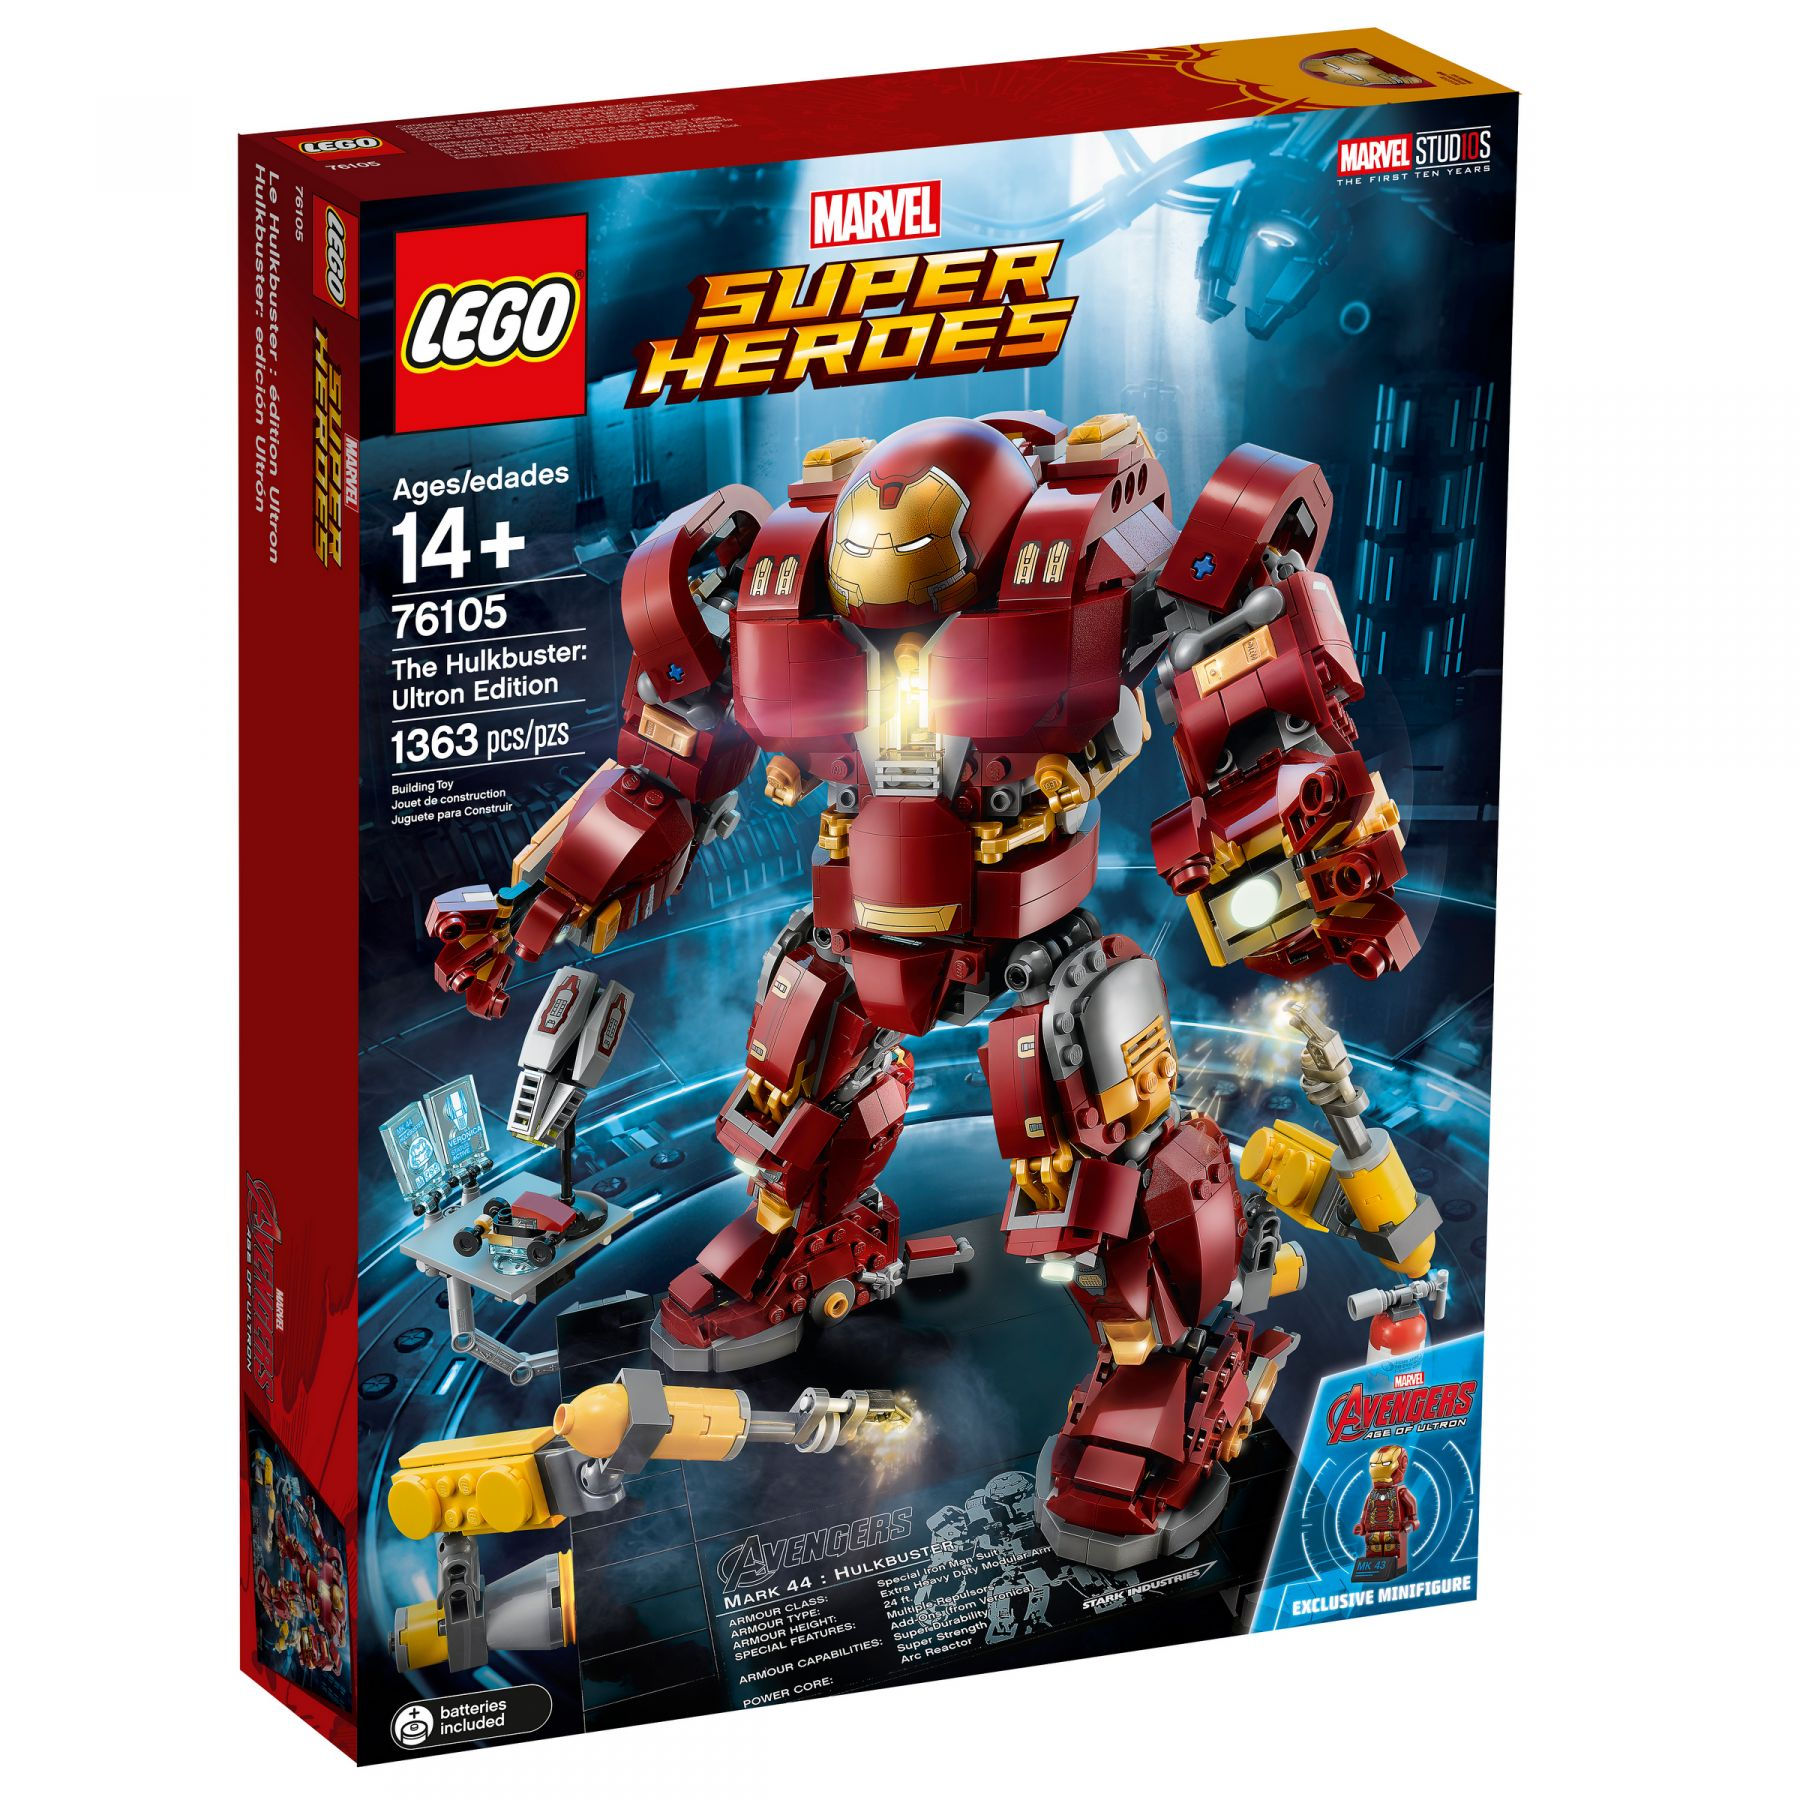 LEGO Super Heroes 76105 Marvel Avengers: Infinity War - The Hulkbuster: Ultron Edition LEGO_76105_alt1.jpg